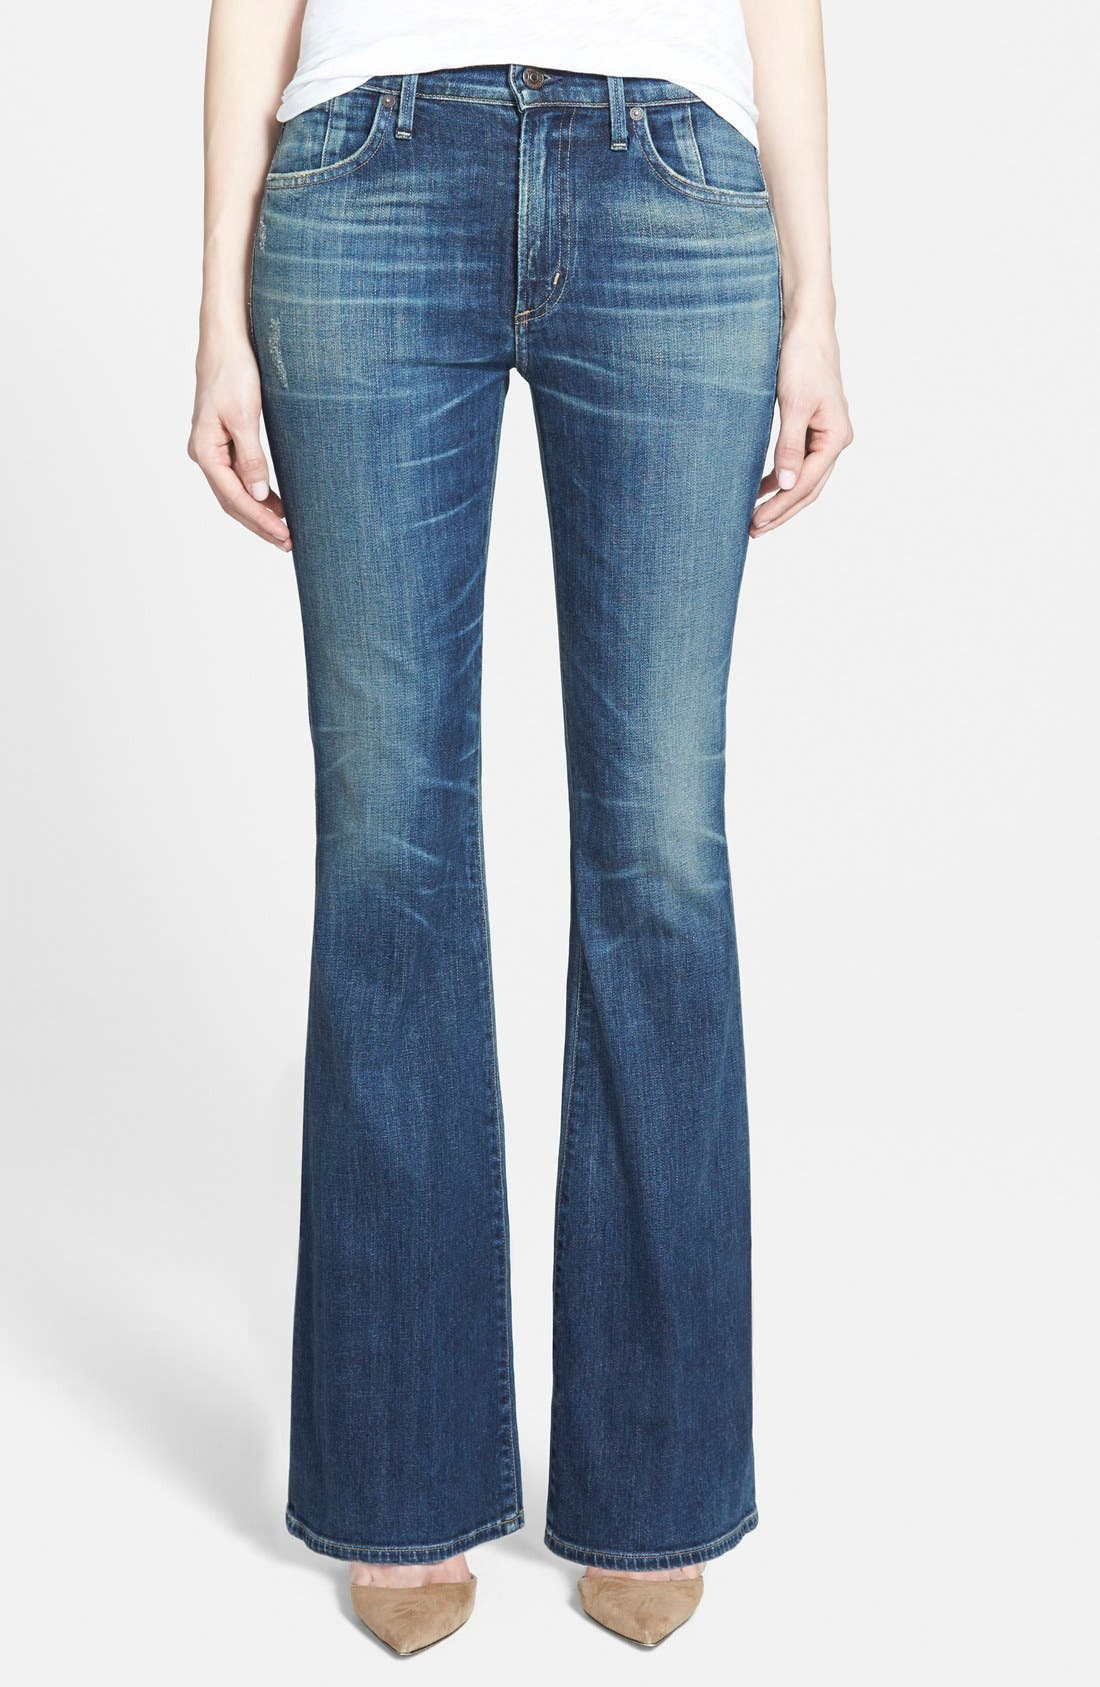 Main Image - Citizens of Humanity 'Fleetwood' High Rise Flare Jeans (Harvest Moon) (Petite)